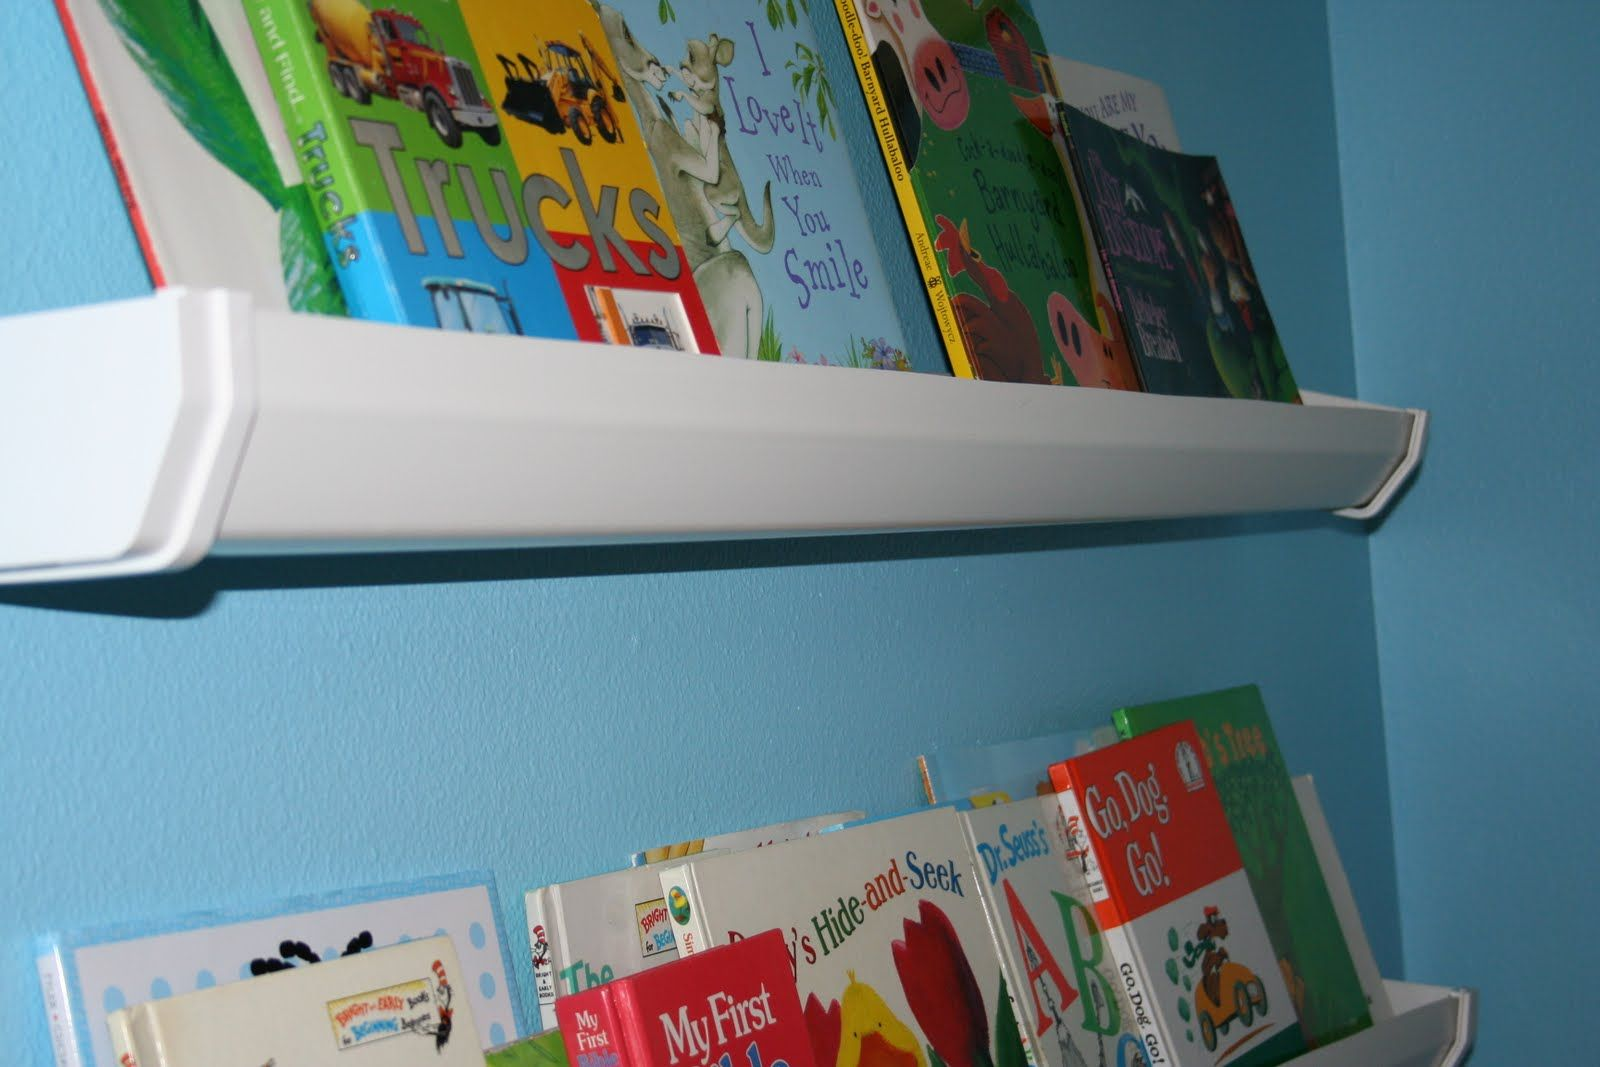 Wall Mounted Bookshelves Made From Vinyl Gutters Awesome